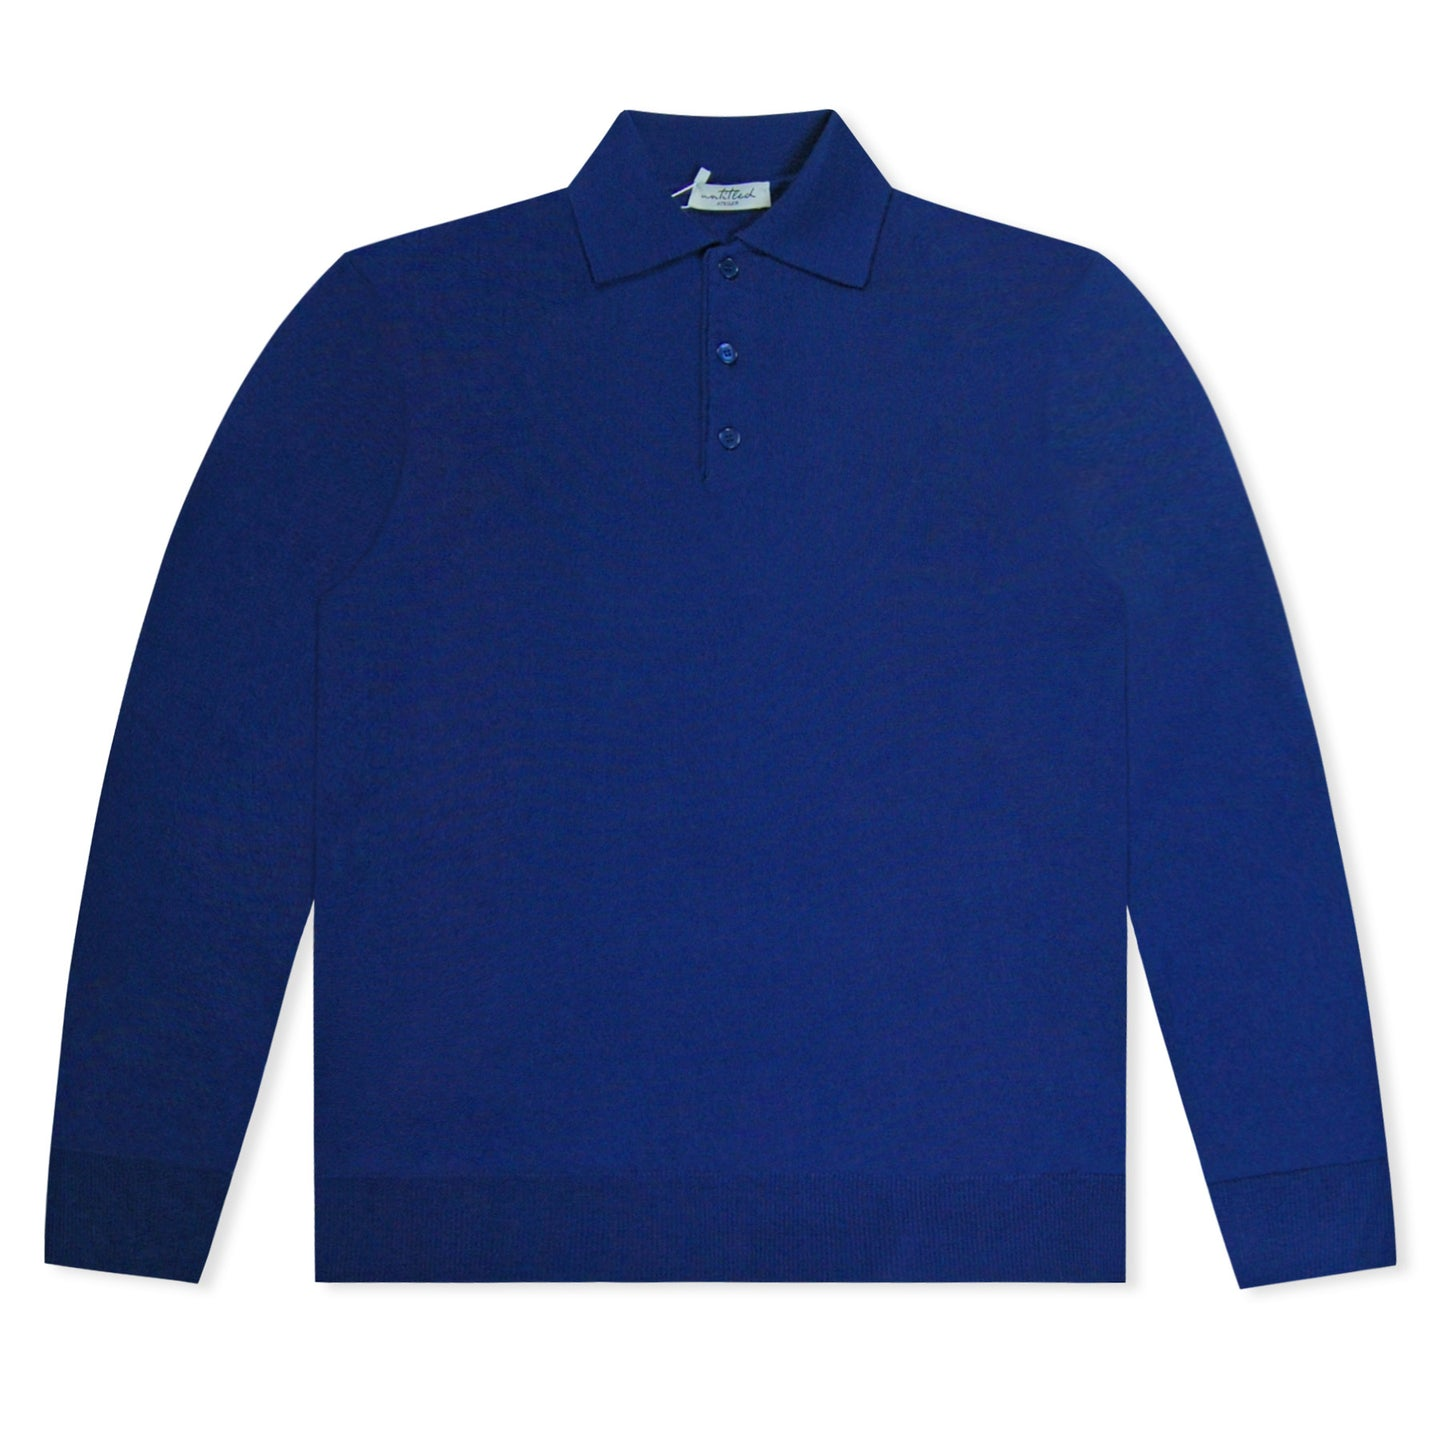 Untitled Atelier Royal Blue Knitted Polo